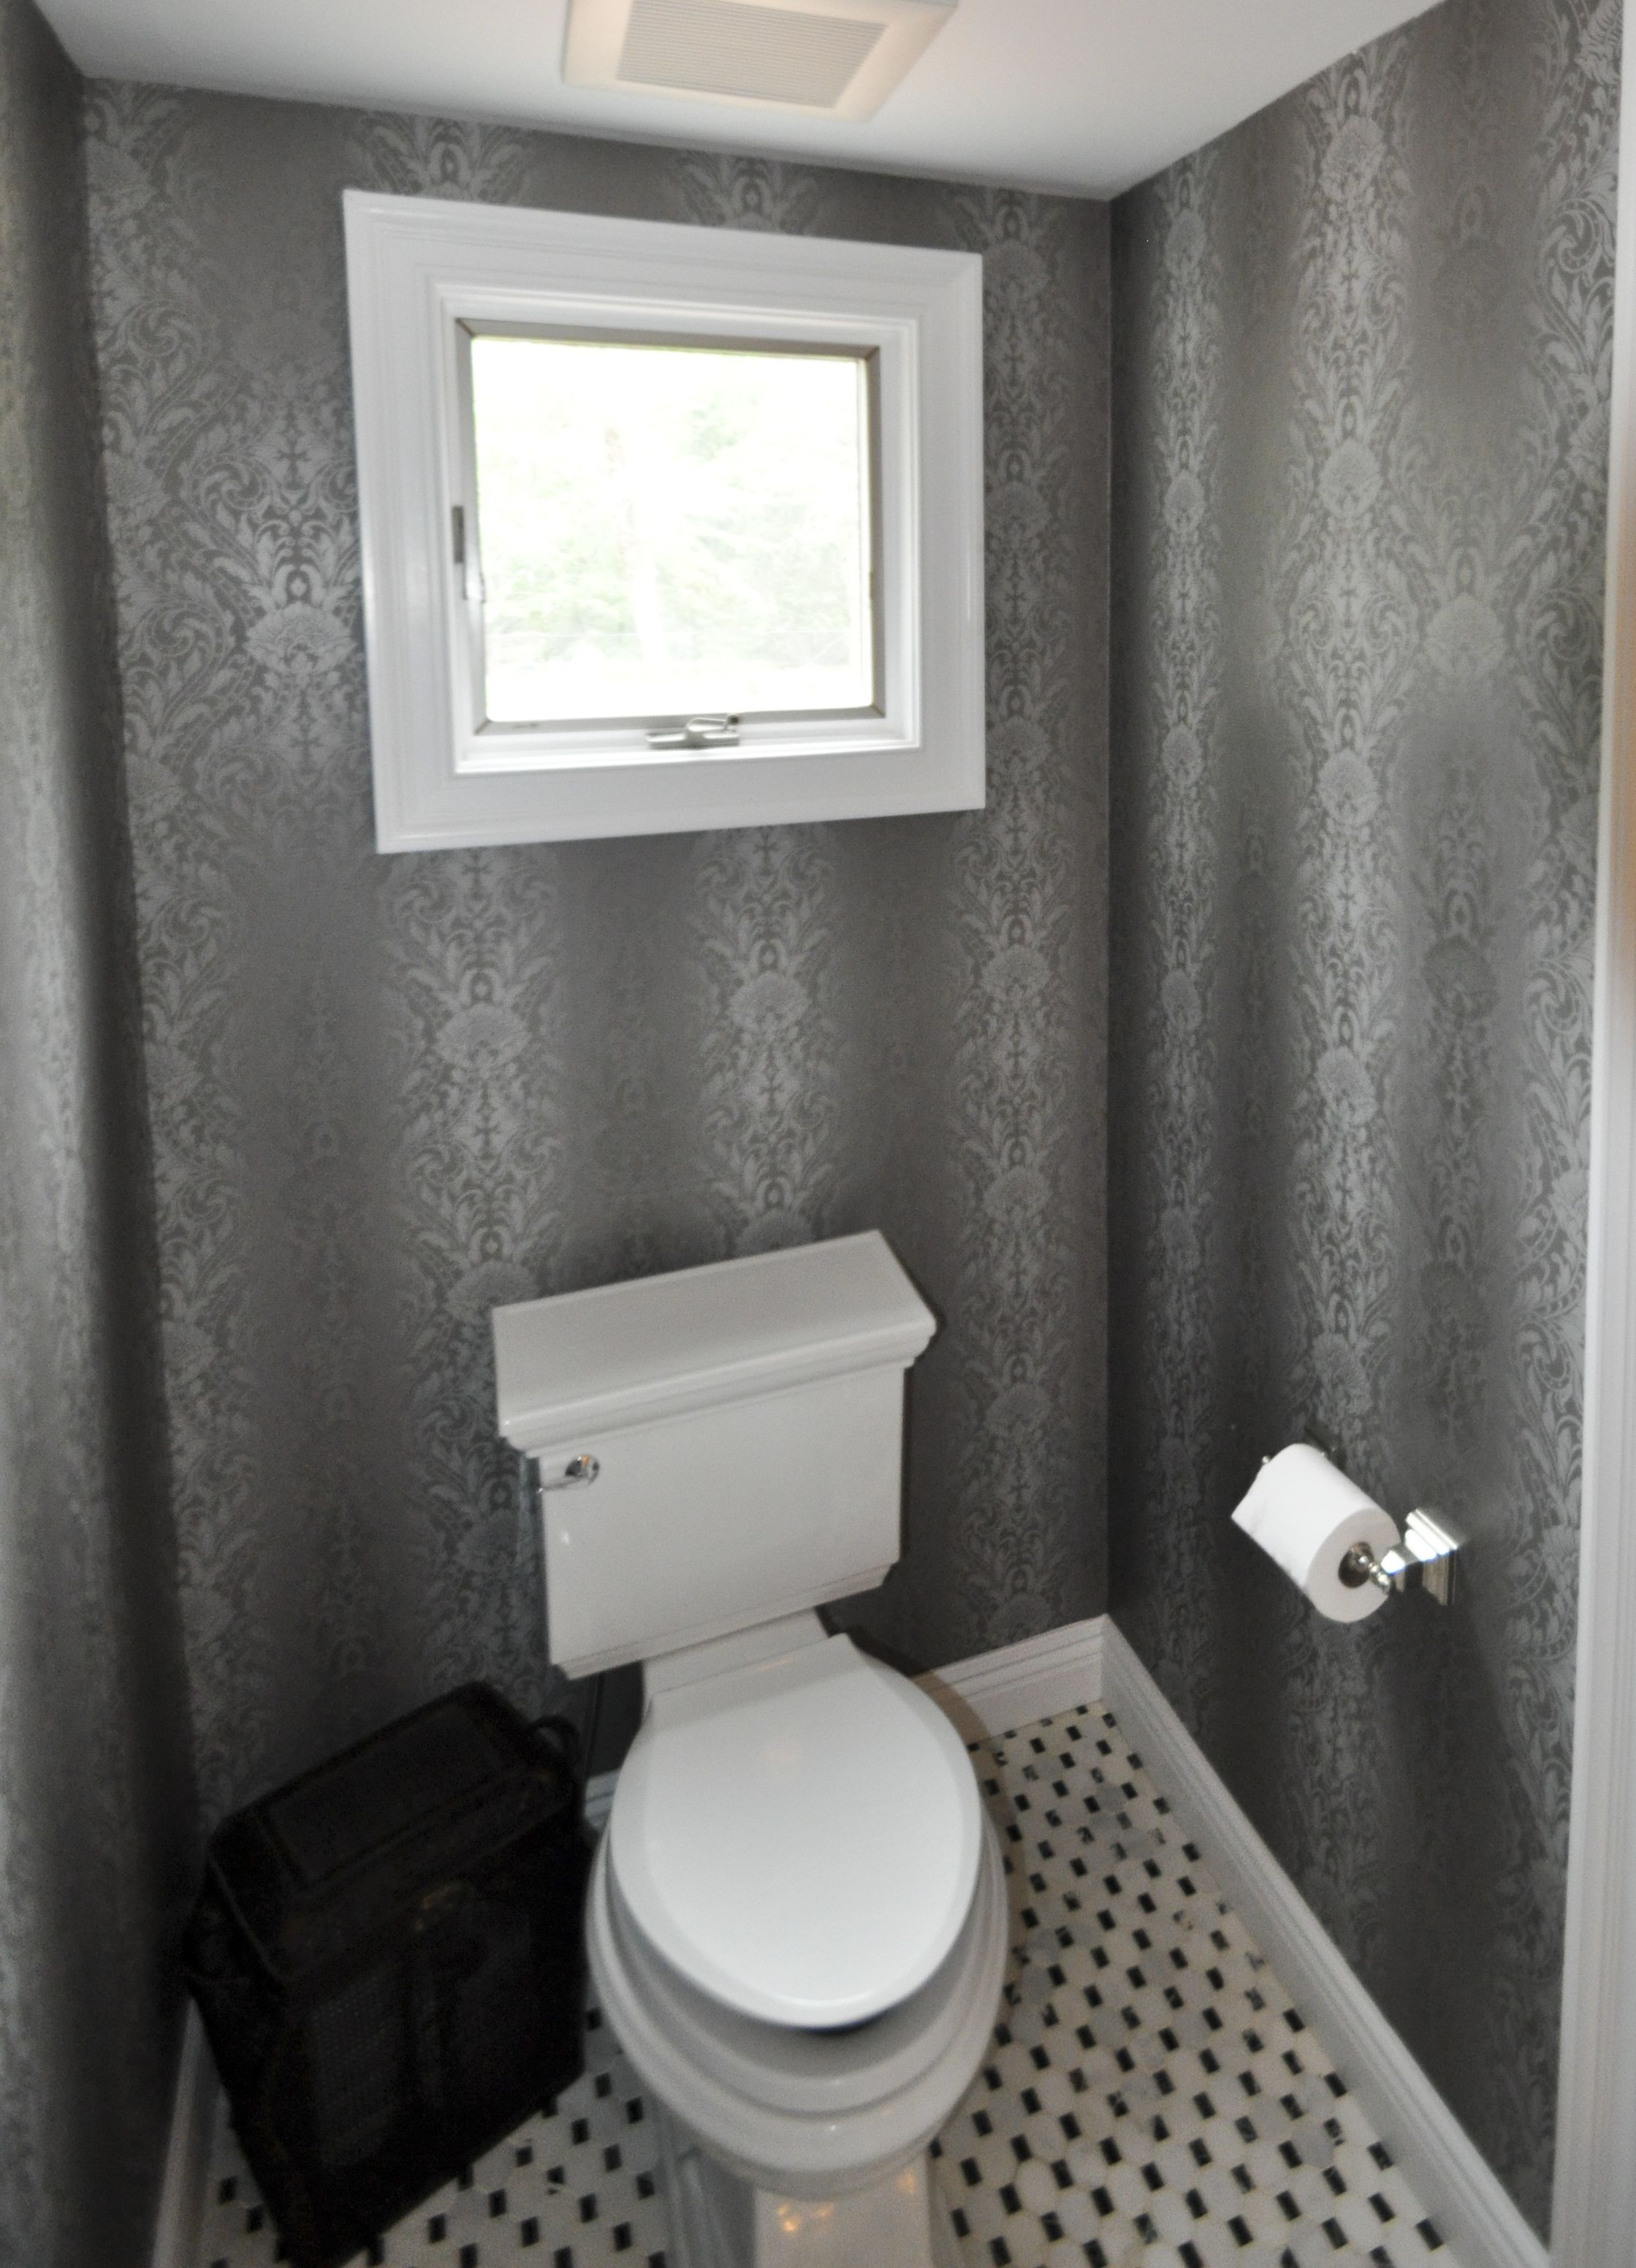 1 2 Bathroom With Toilet Centered Under Window And Panasonic Whisper Exhaust Fan Bathrooms